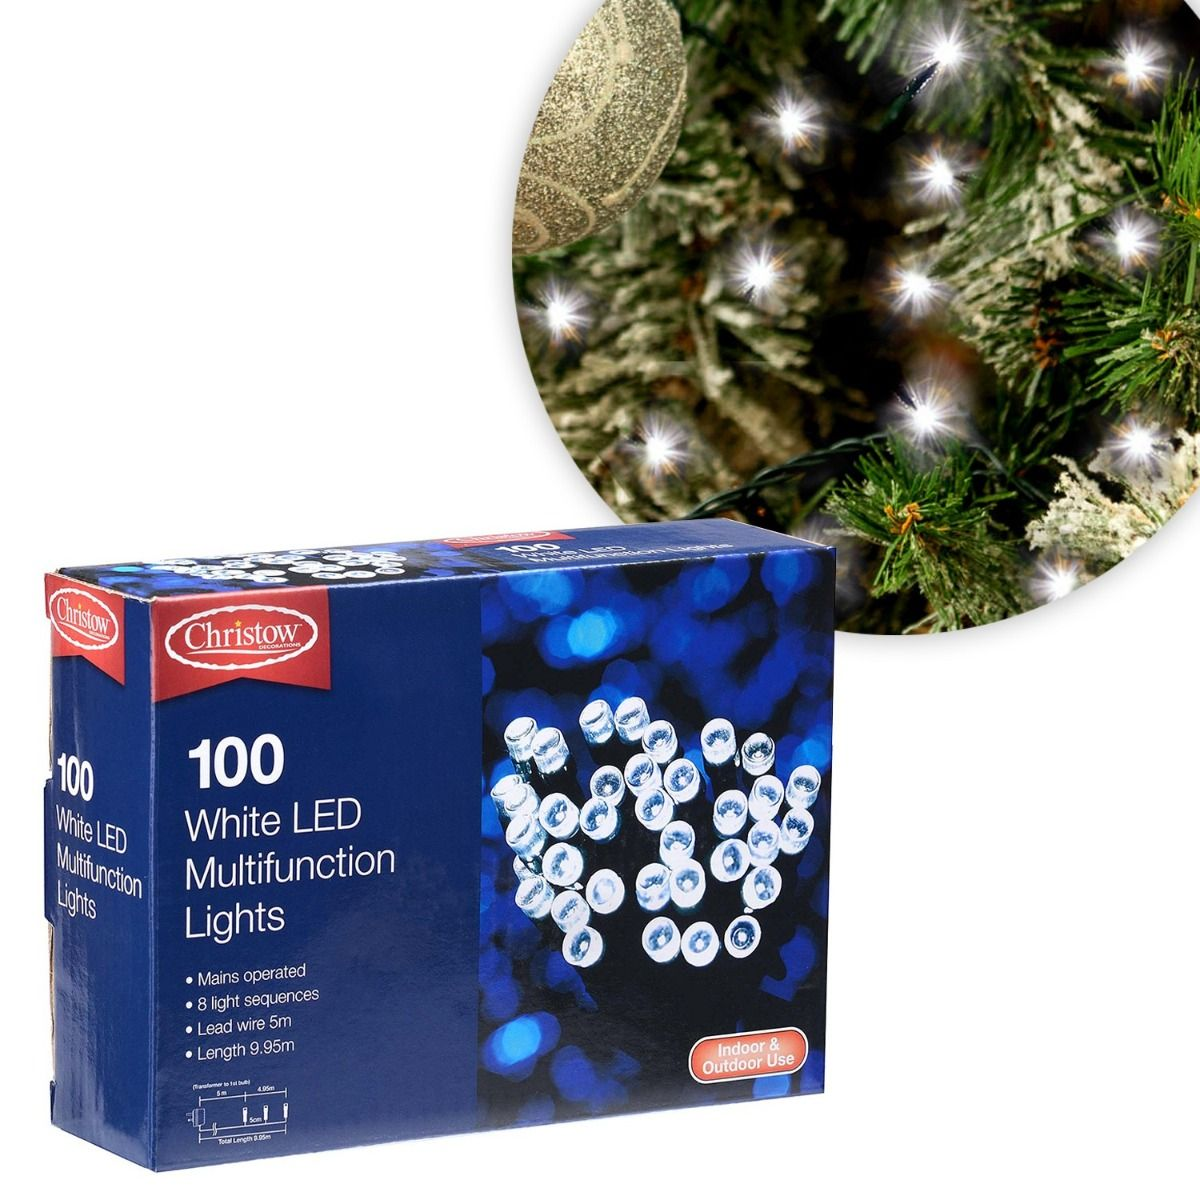 Christow Bright White Led Multi Function Christmas Lights